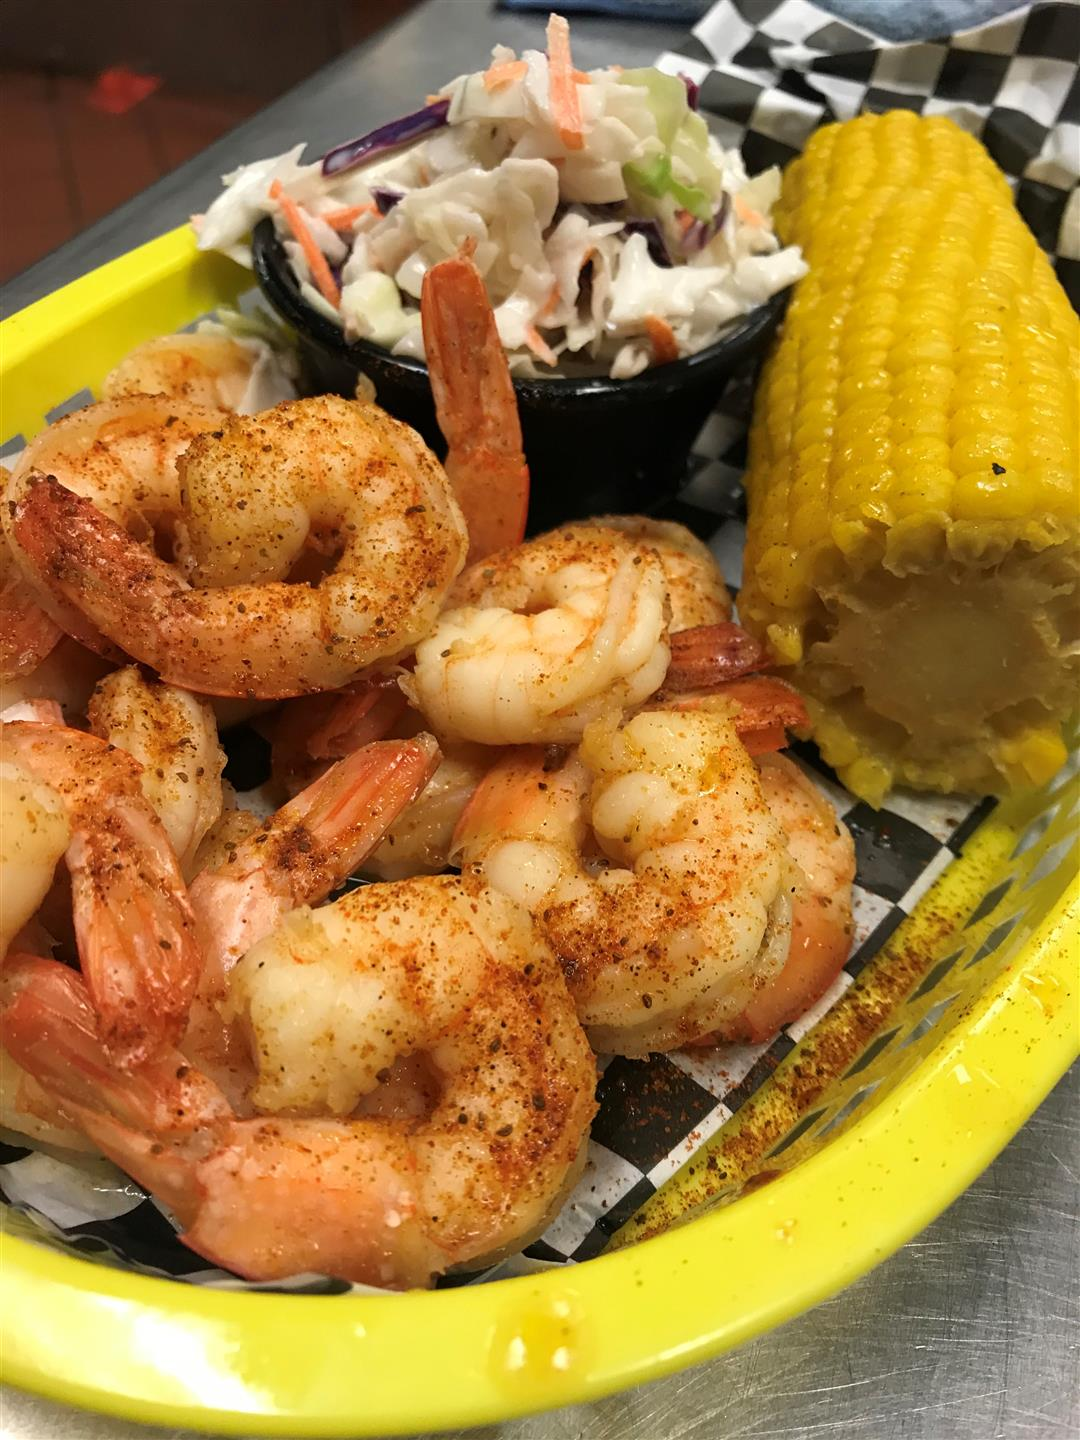 spicy boiled shrimp in a food tray with half a corn on the cob and a side of coleslaw